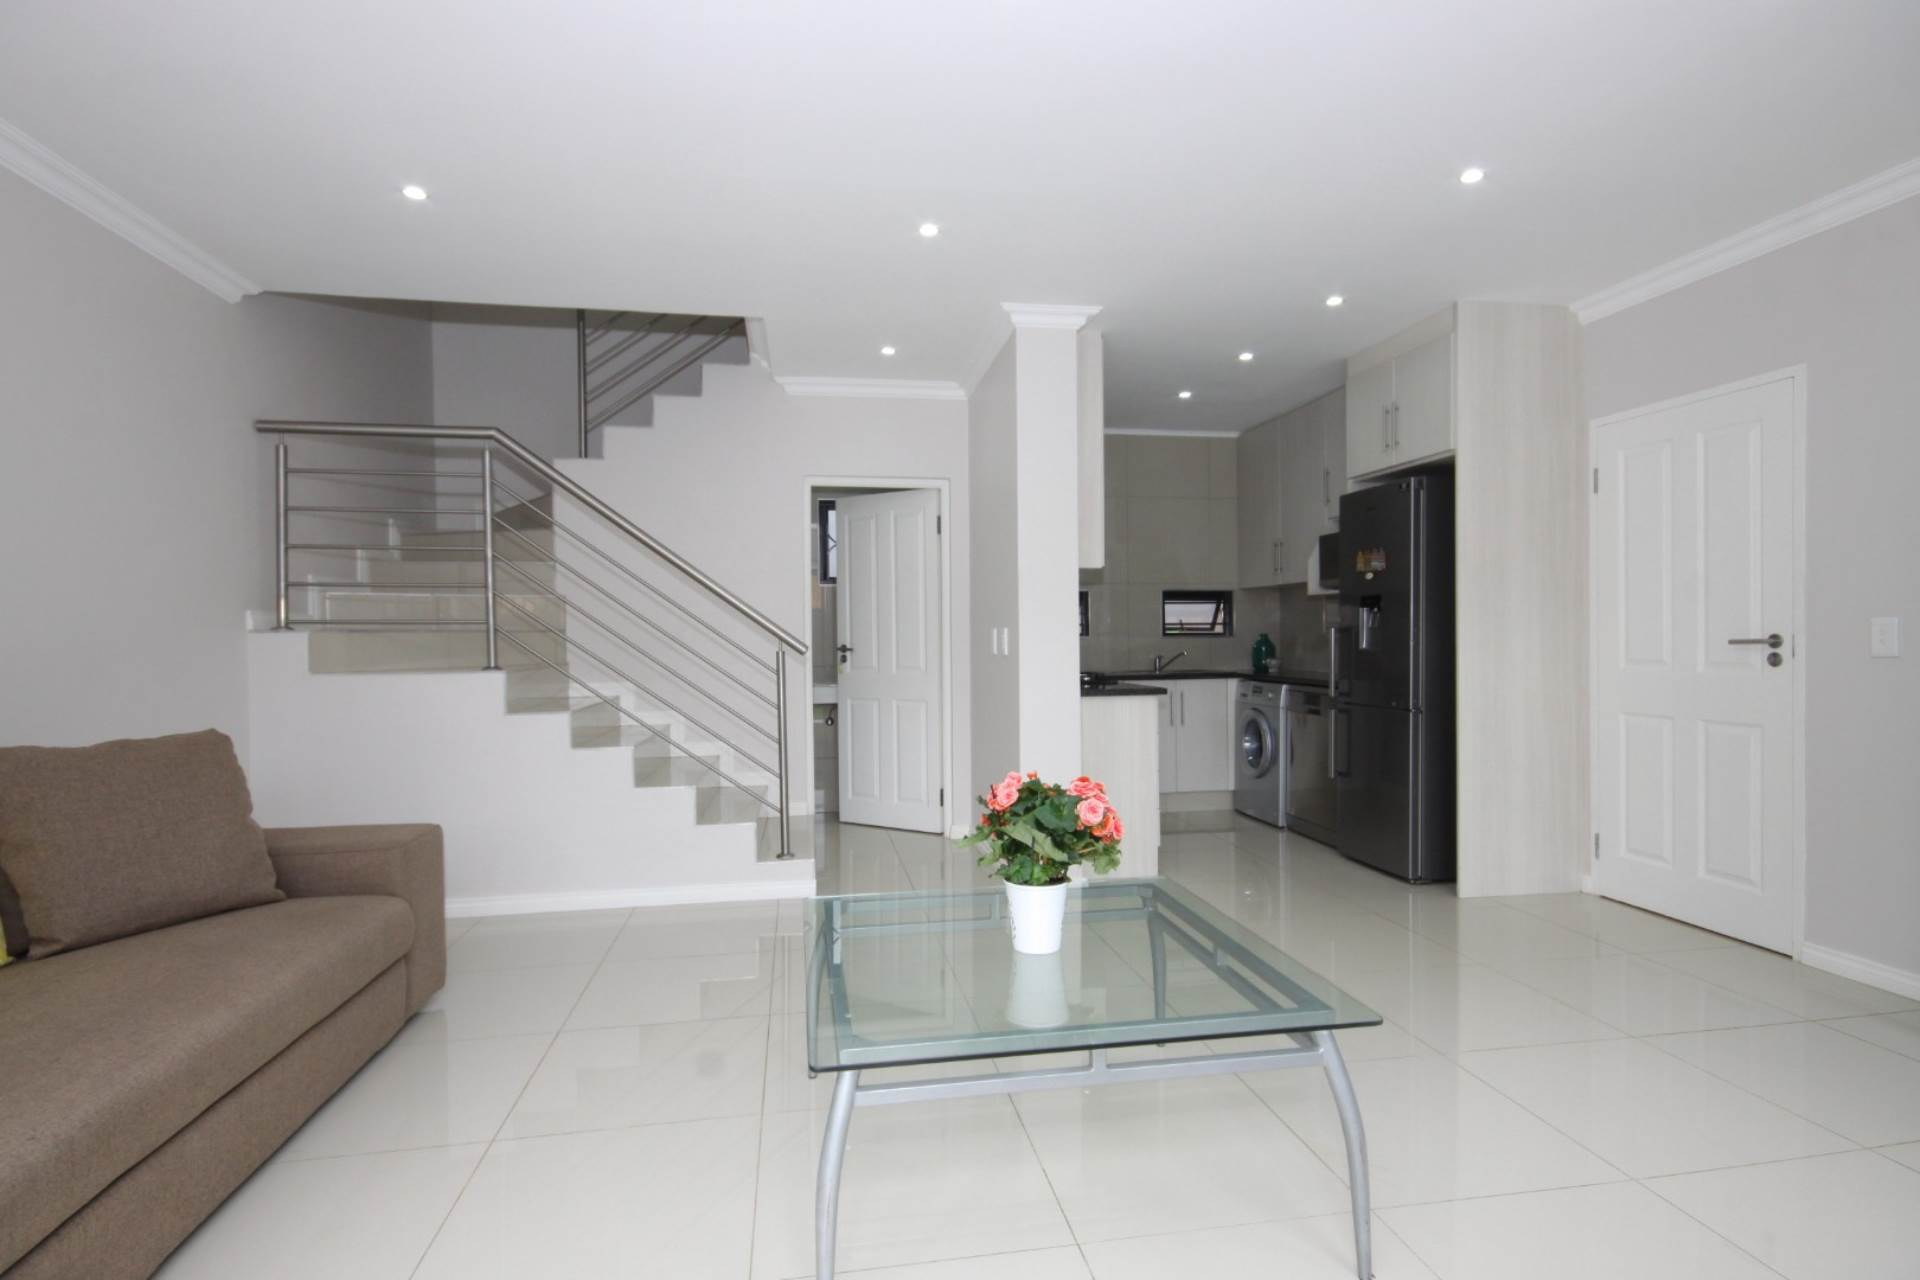 3 BedroomHouse For Sale In Robindale